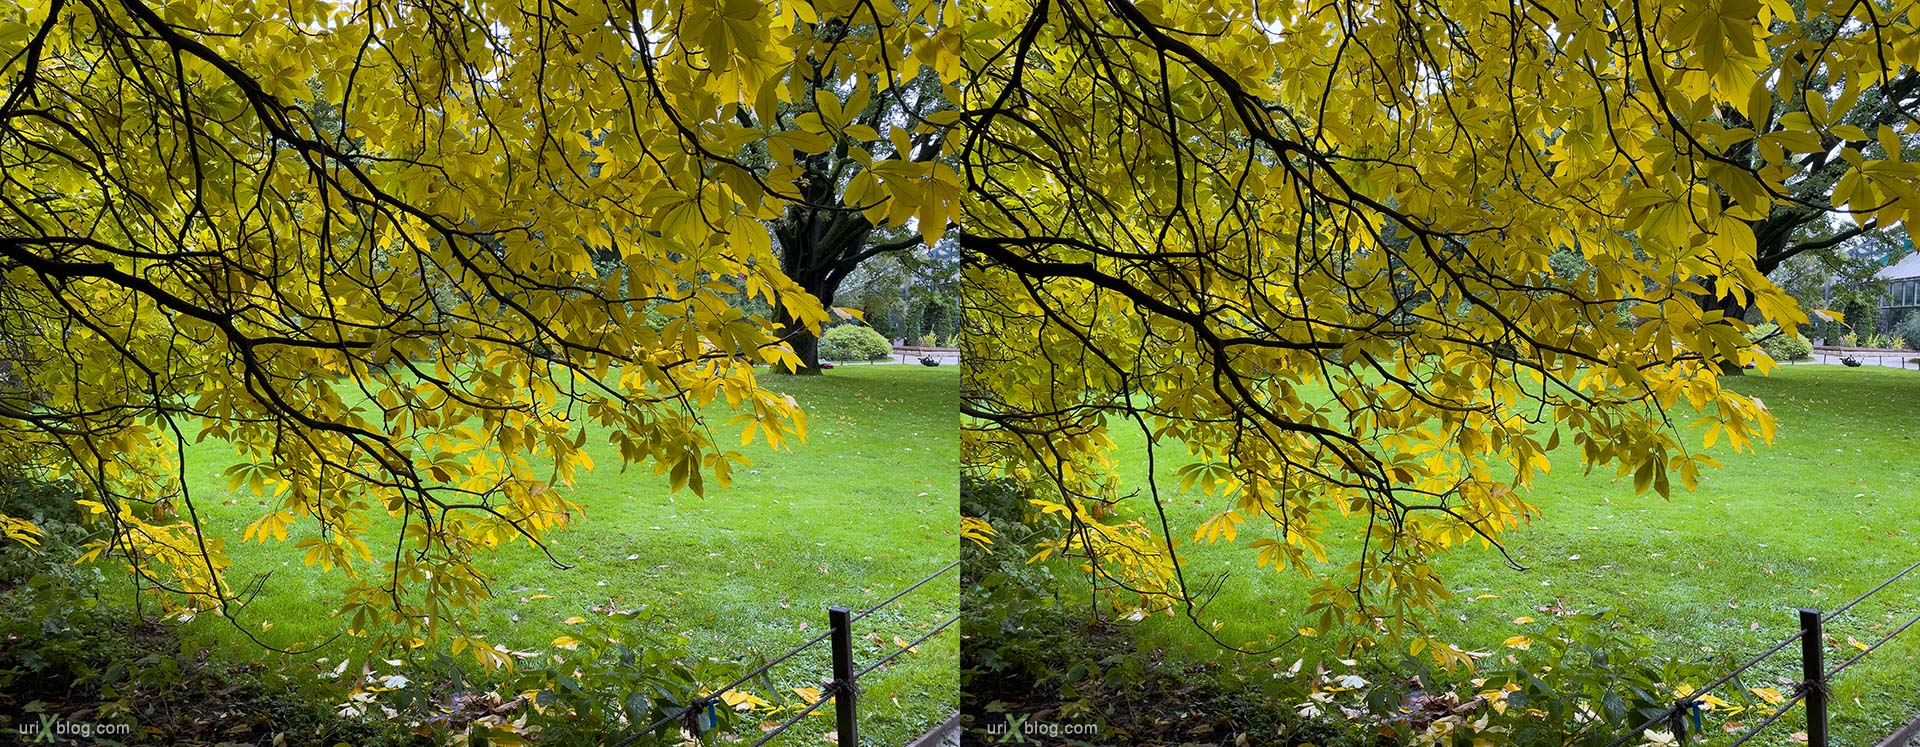 Pharmaceutical Garden, Russia, Moscow, 3D, stereo pair, cross-eyed, crossview, cross view stereo pair, stereoscopic